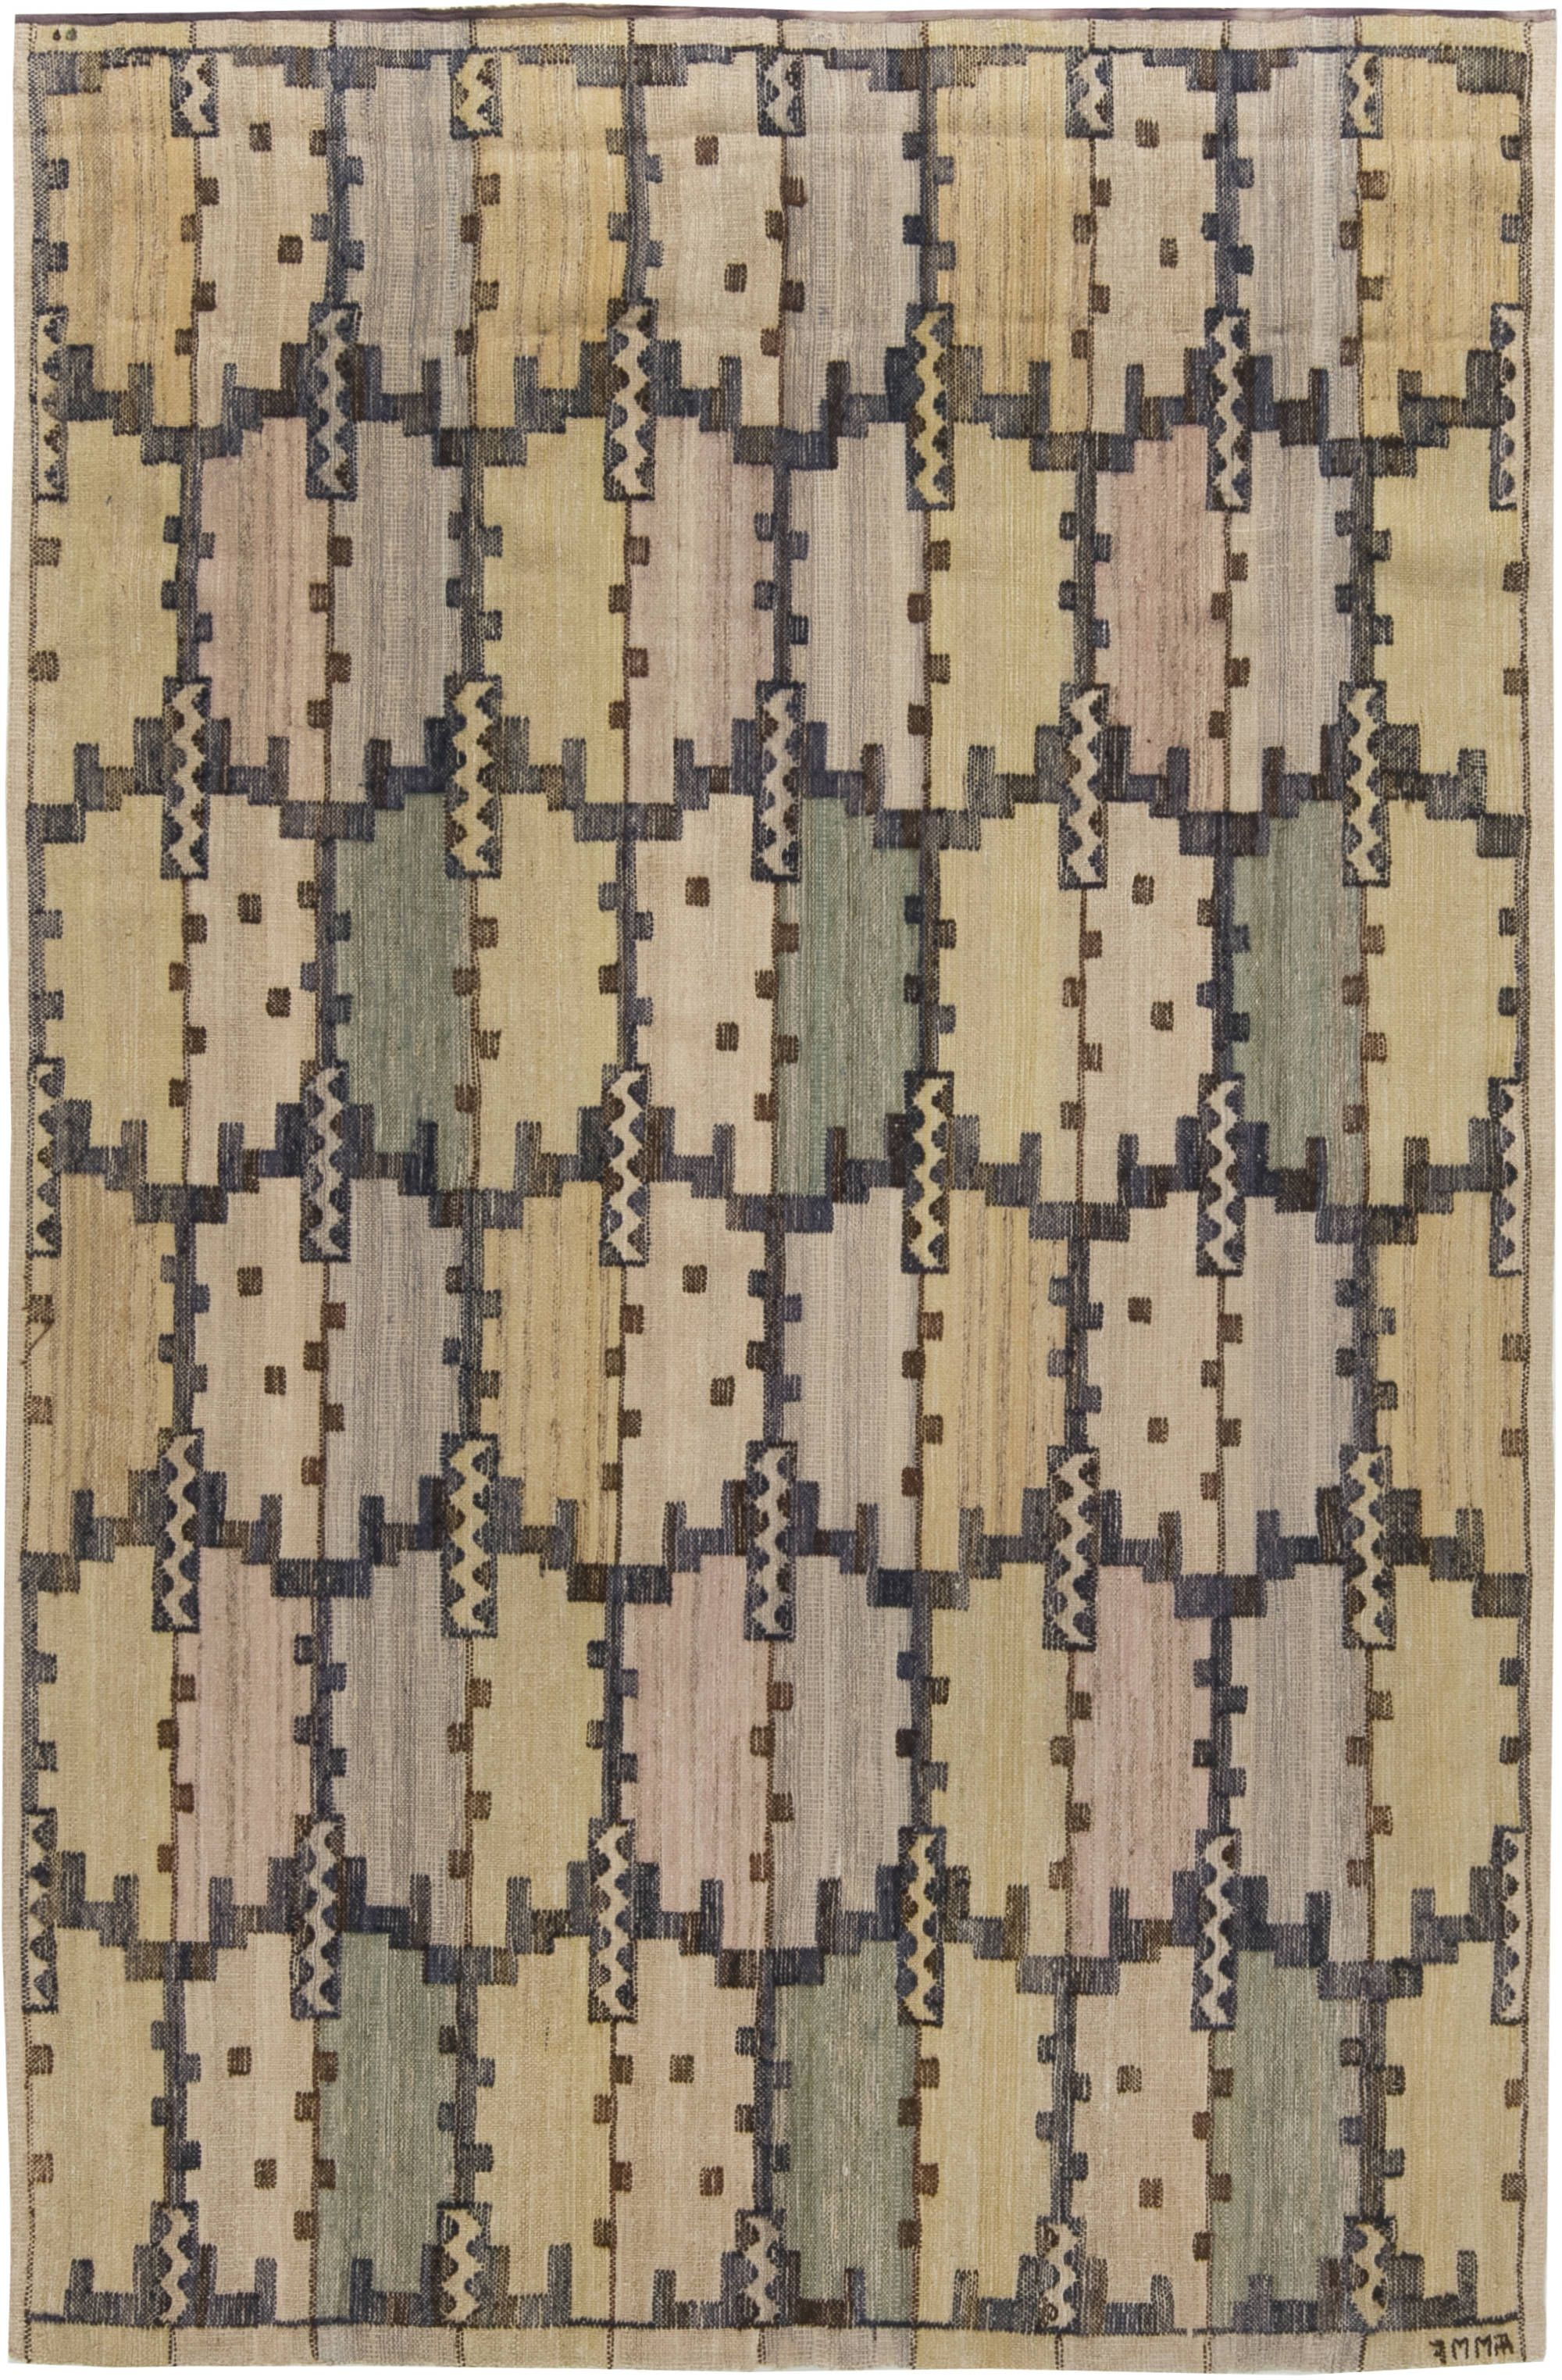 Mid Century Swedish Tapestry Weave By Marta Mass Fjetterstrom Bb6477 By Dlb Scandinavian Rug Tapestry Weaving Swedish Rug